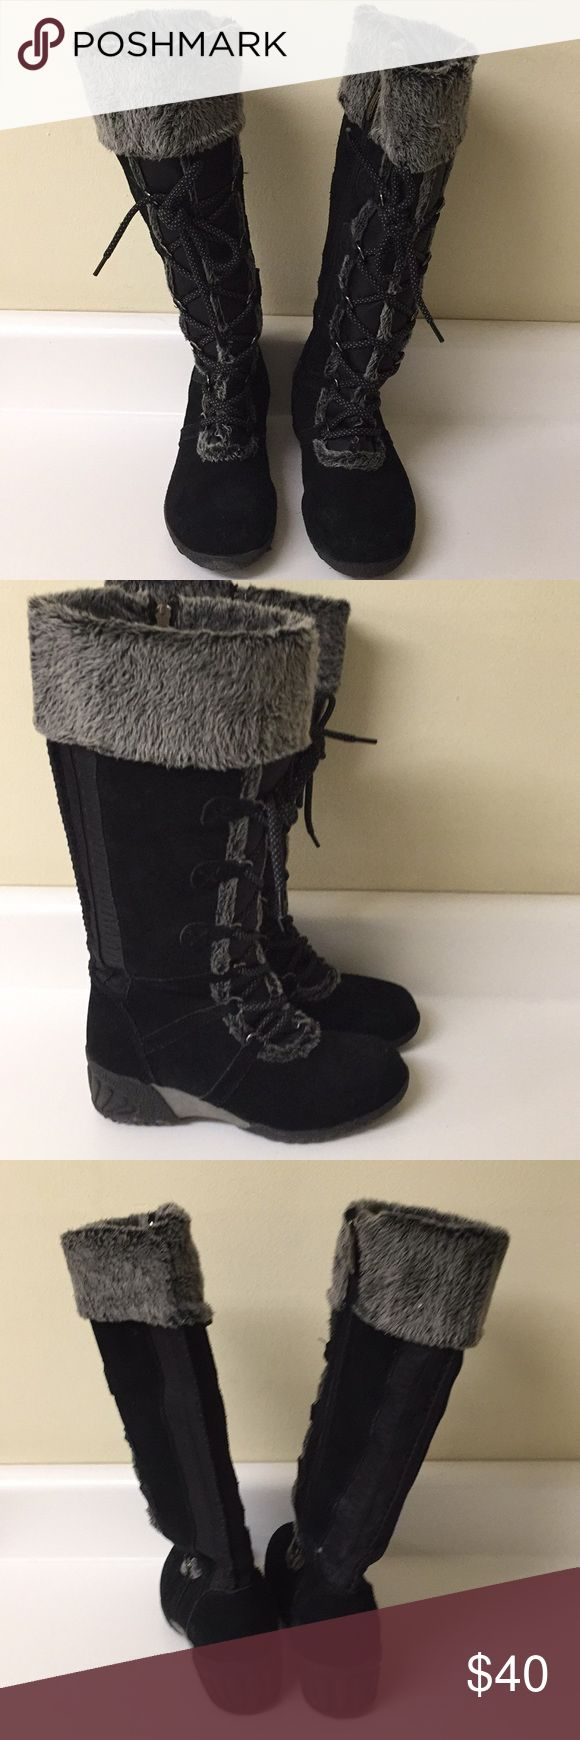 Khombu winter boots with fur. Size 6 Excellent condition. Size 6 khombu boots with fur . Adorable lace up detail. Stay warm with these fabulous boots. Khombu Shoes Winter & Rain Boots